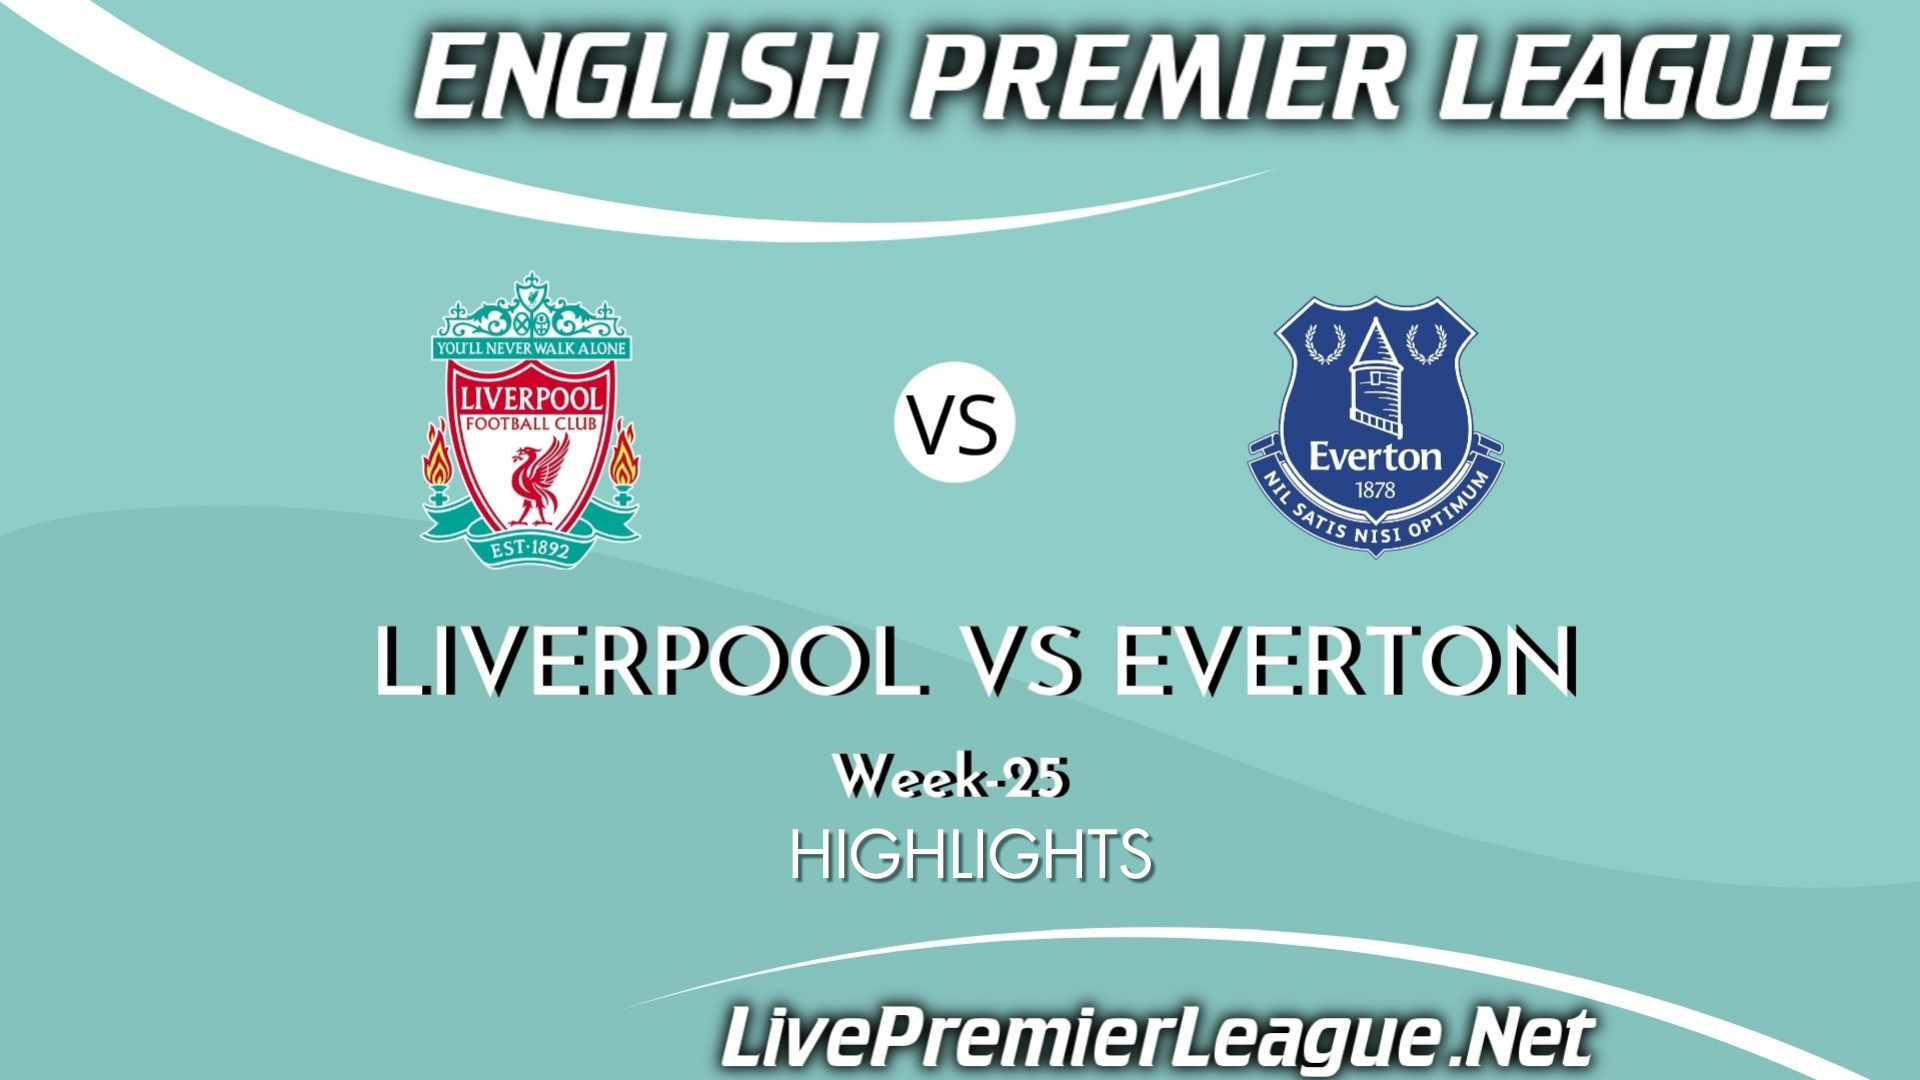 Liverpool Vs Everton Highlights 2021 Week 25 EPL